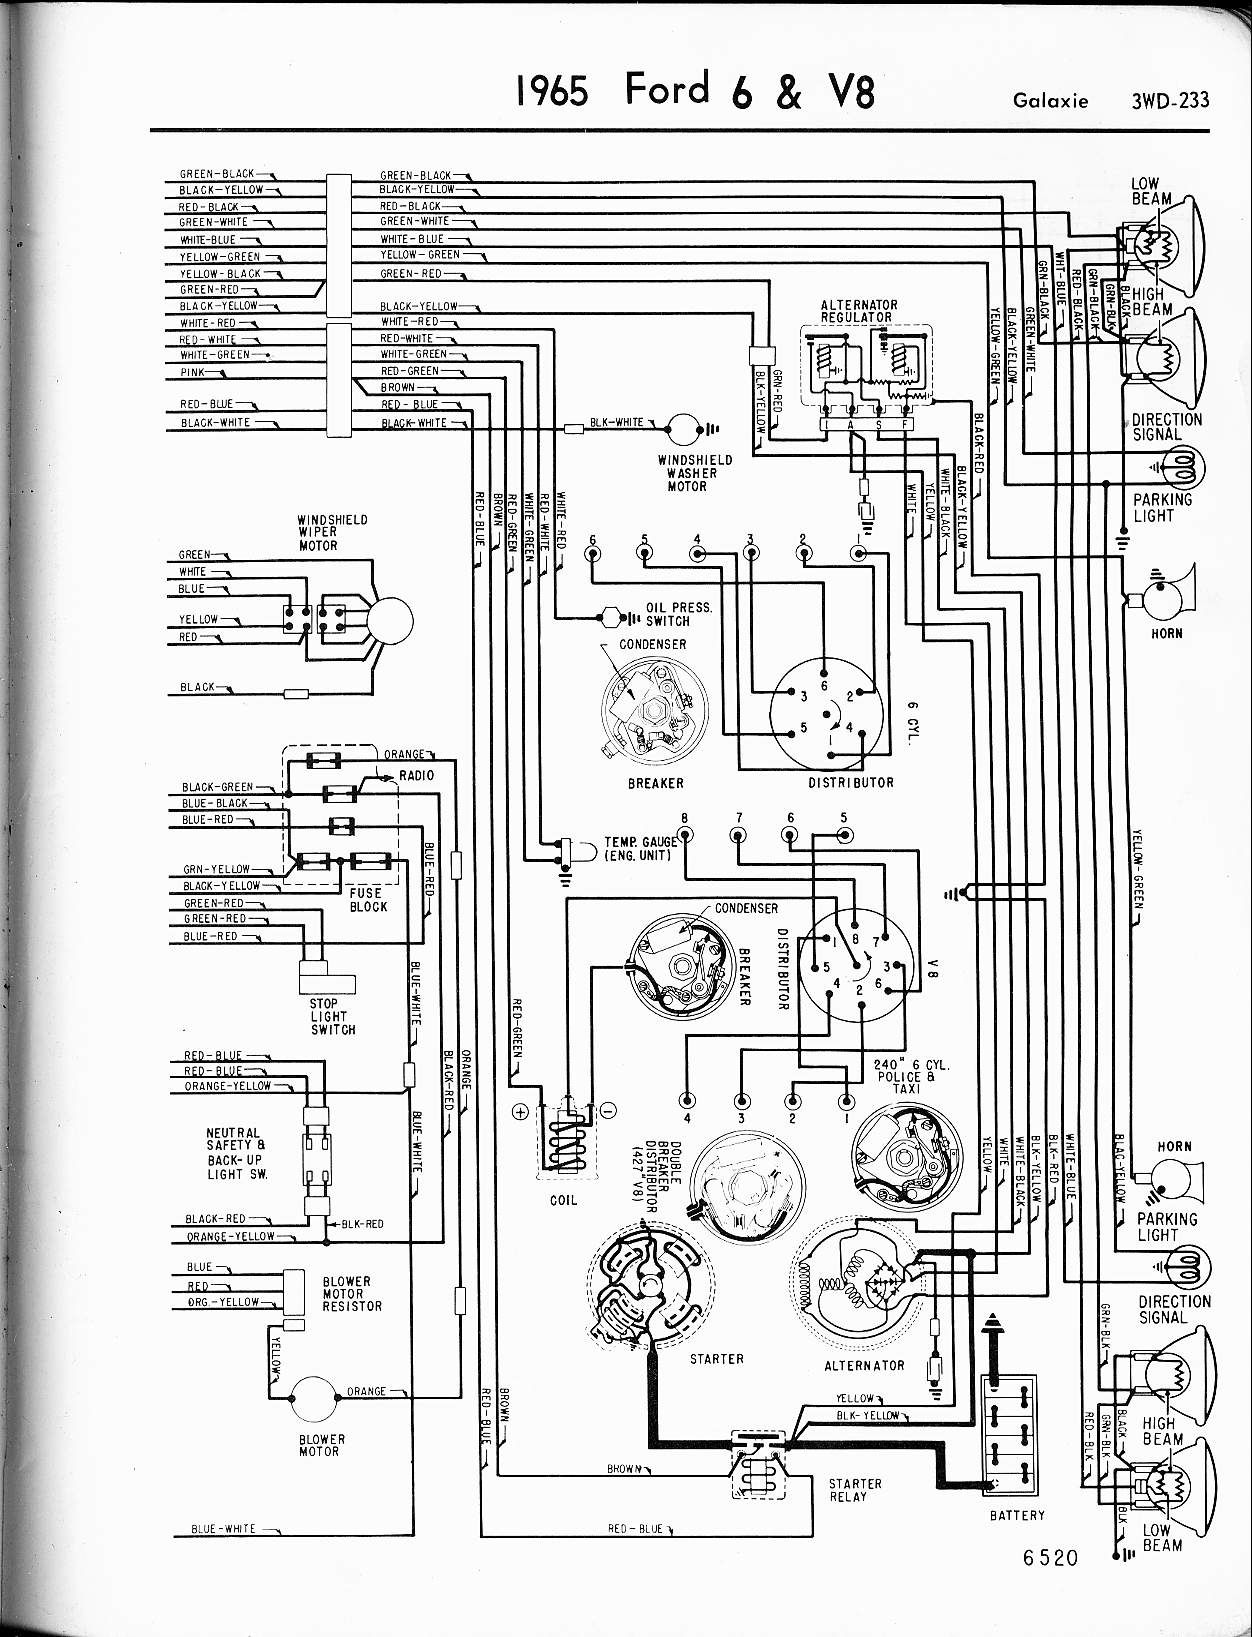 Remarkable Ford Wire Diagram Basic Electronics Wiring Diagram Renstra Mohammedshrine Wiring Digital Resources Renstramohammedshrineorg